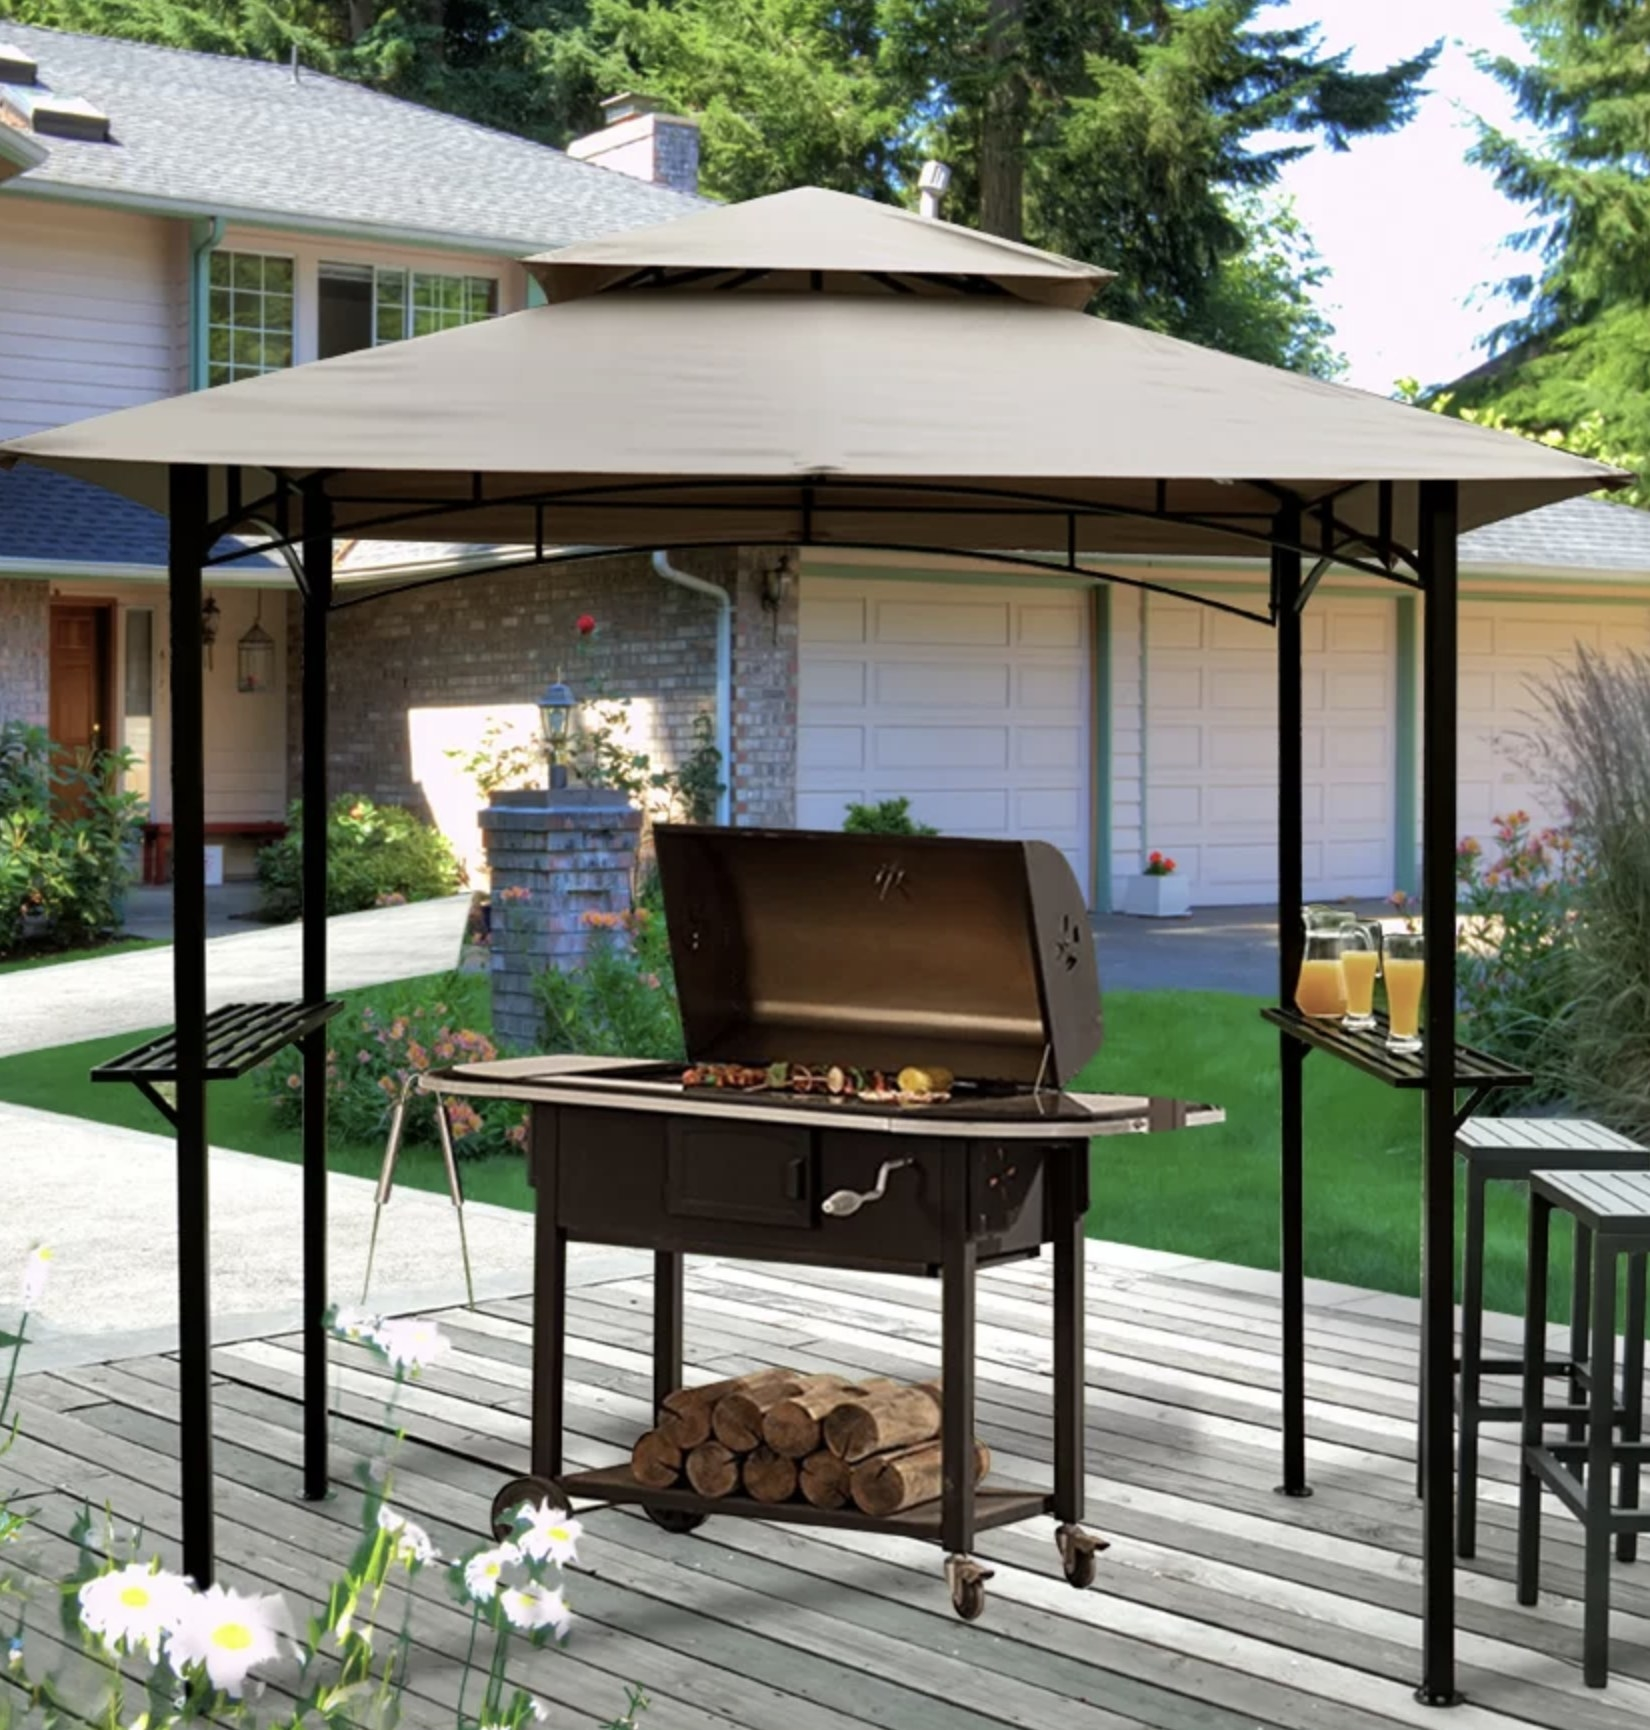 the grill gazebo with a grill underneath it